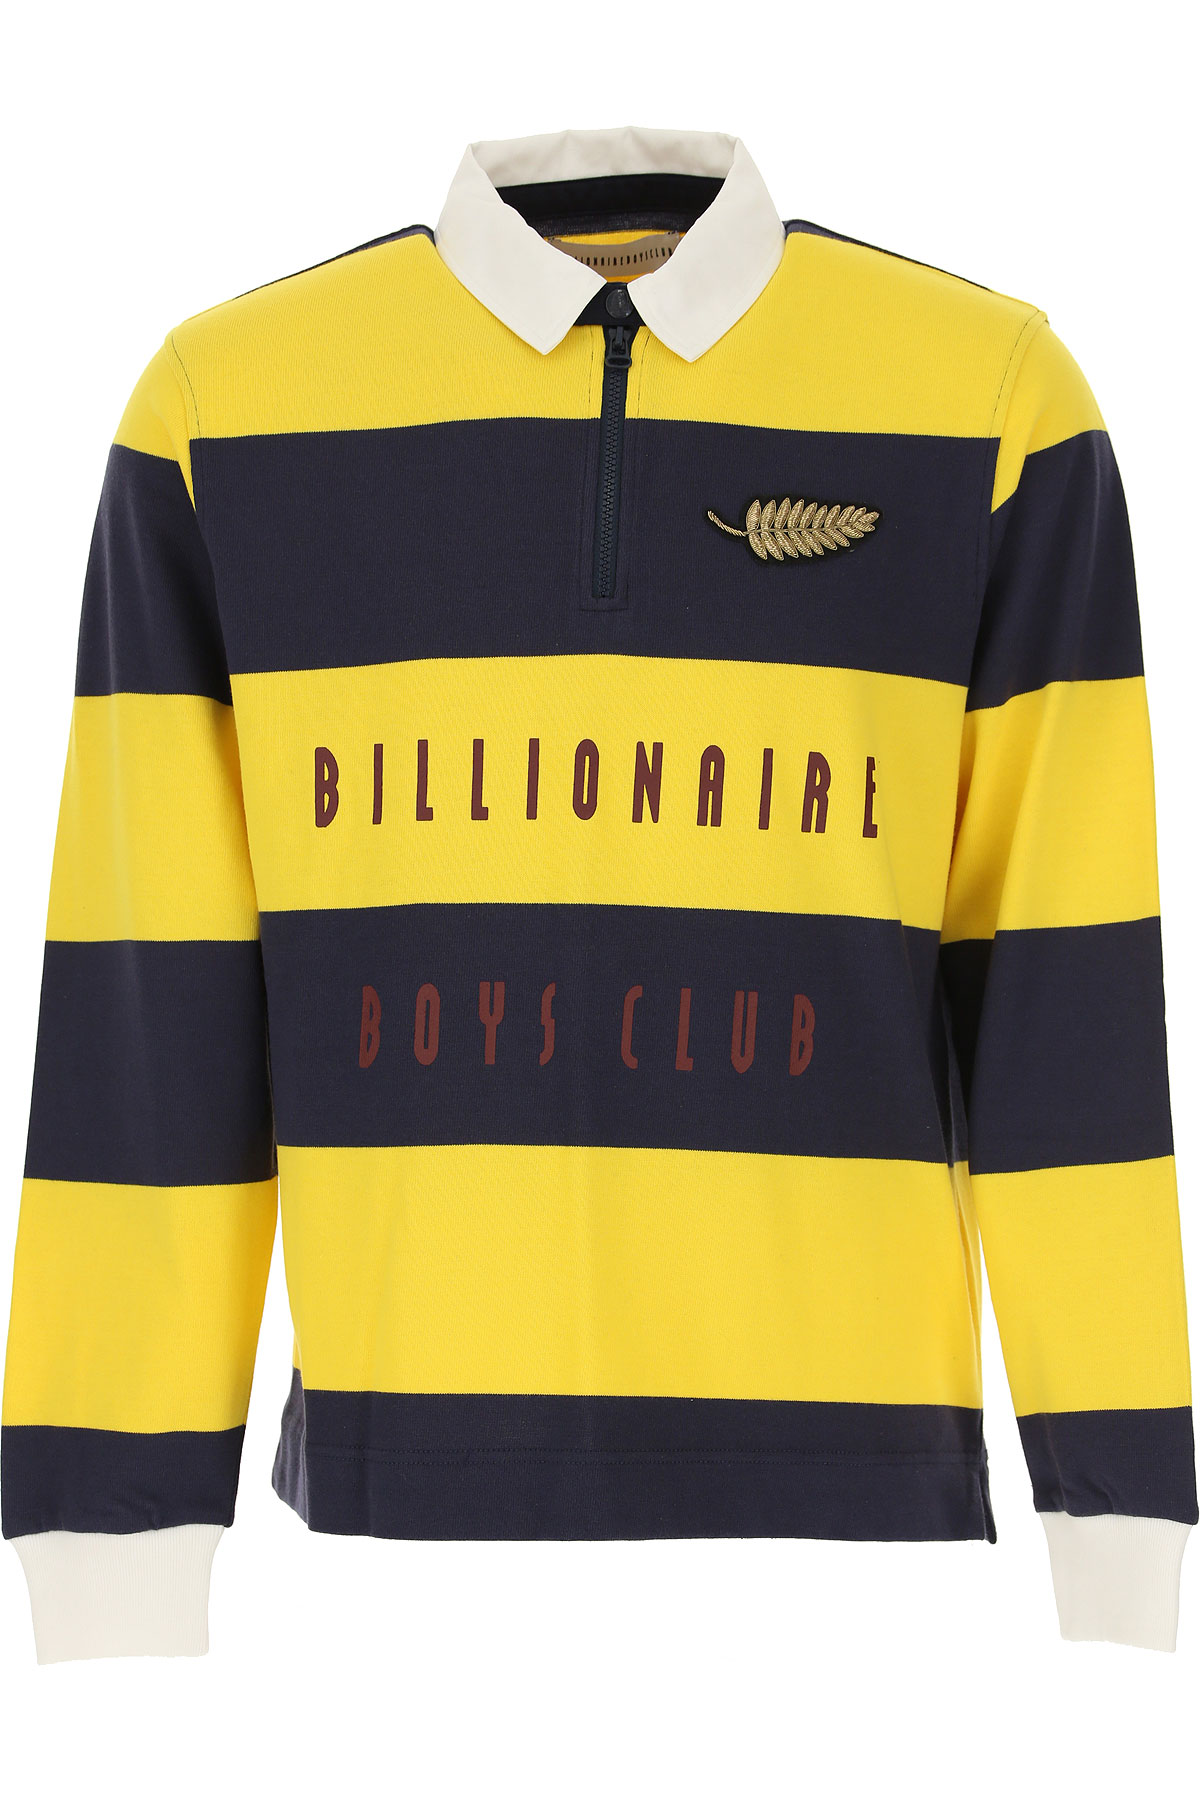 BILLIONAIRE BOYS CLUB Polo Shirt for Men On Sale, Yellow, Cotton, 2019, L M S